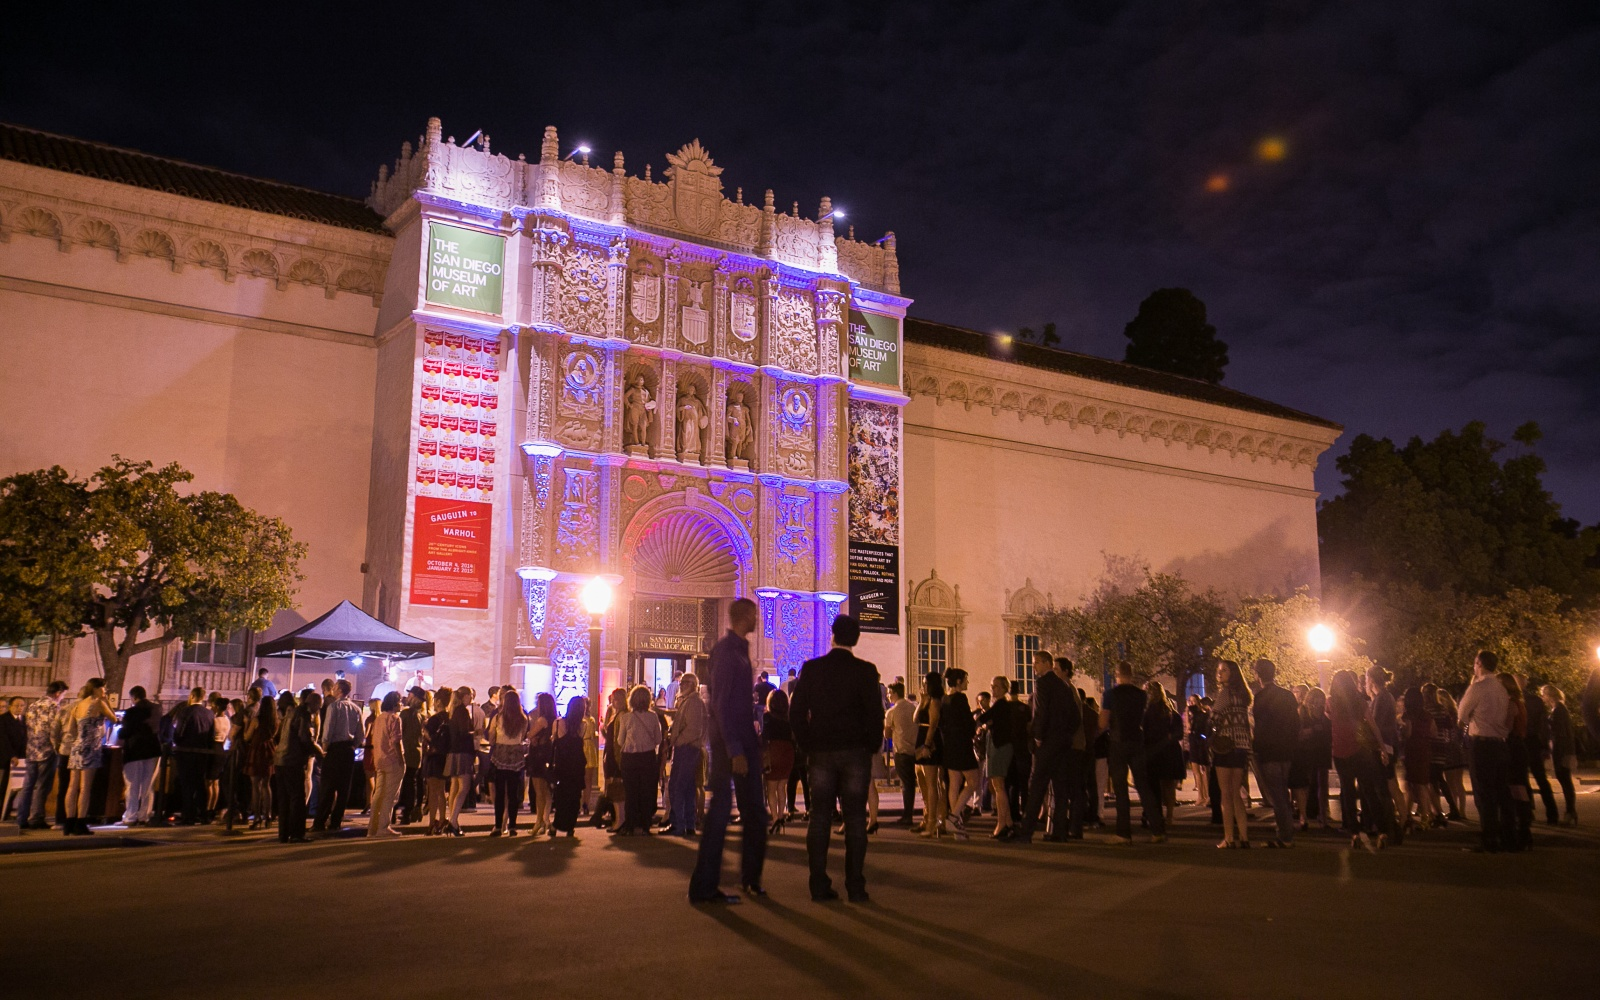 San Diego Museum of Art entrance at night